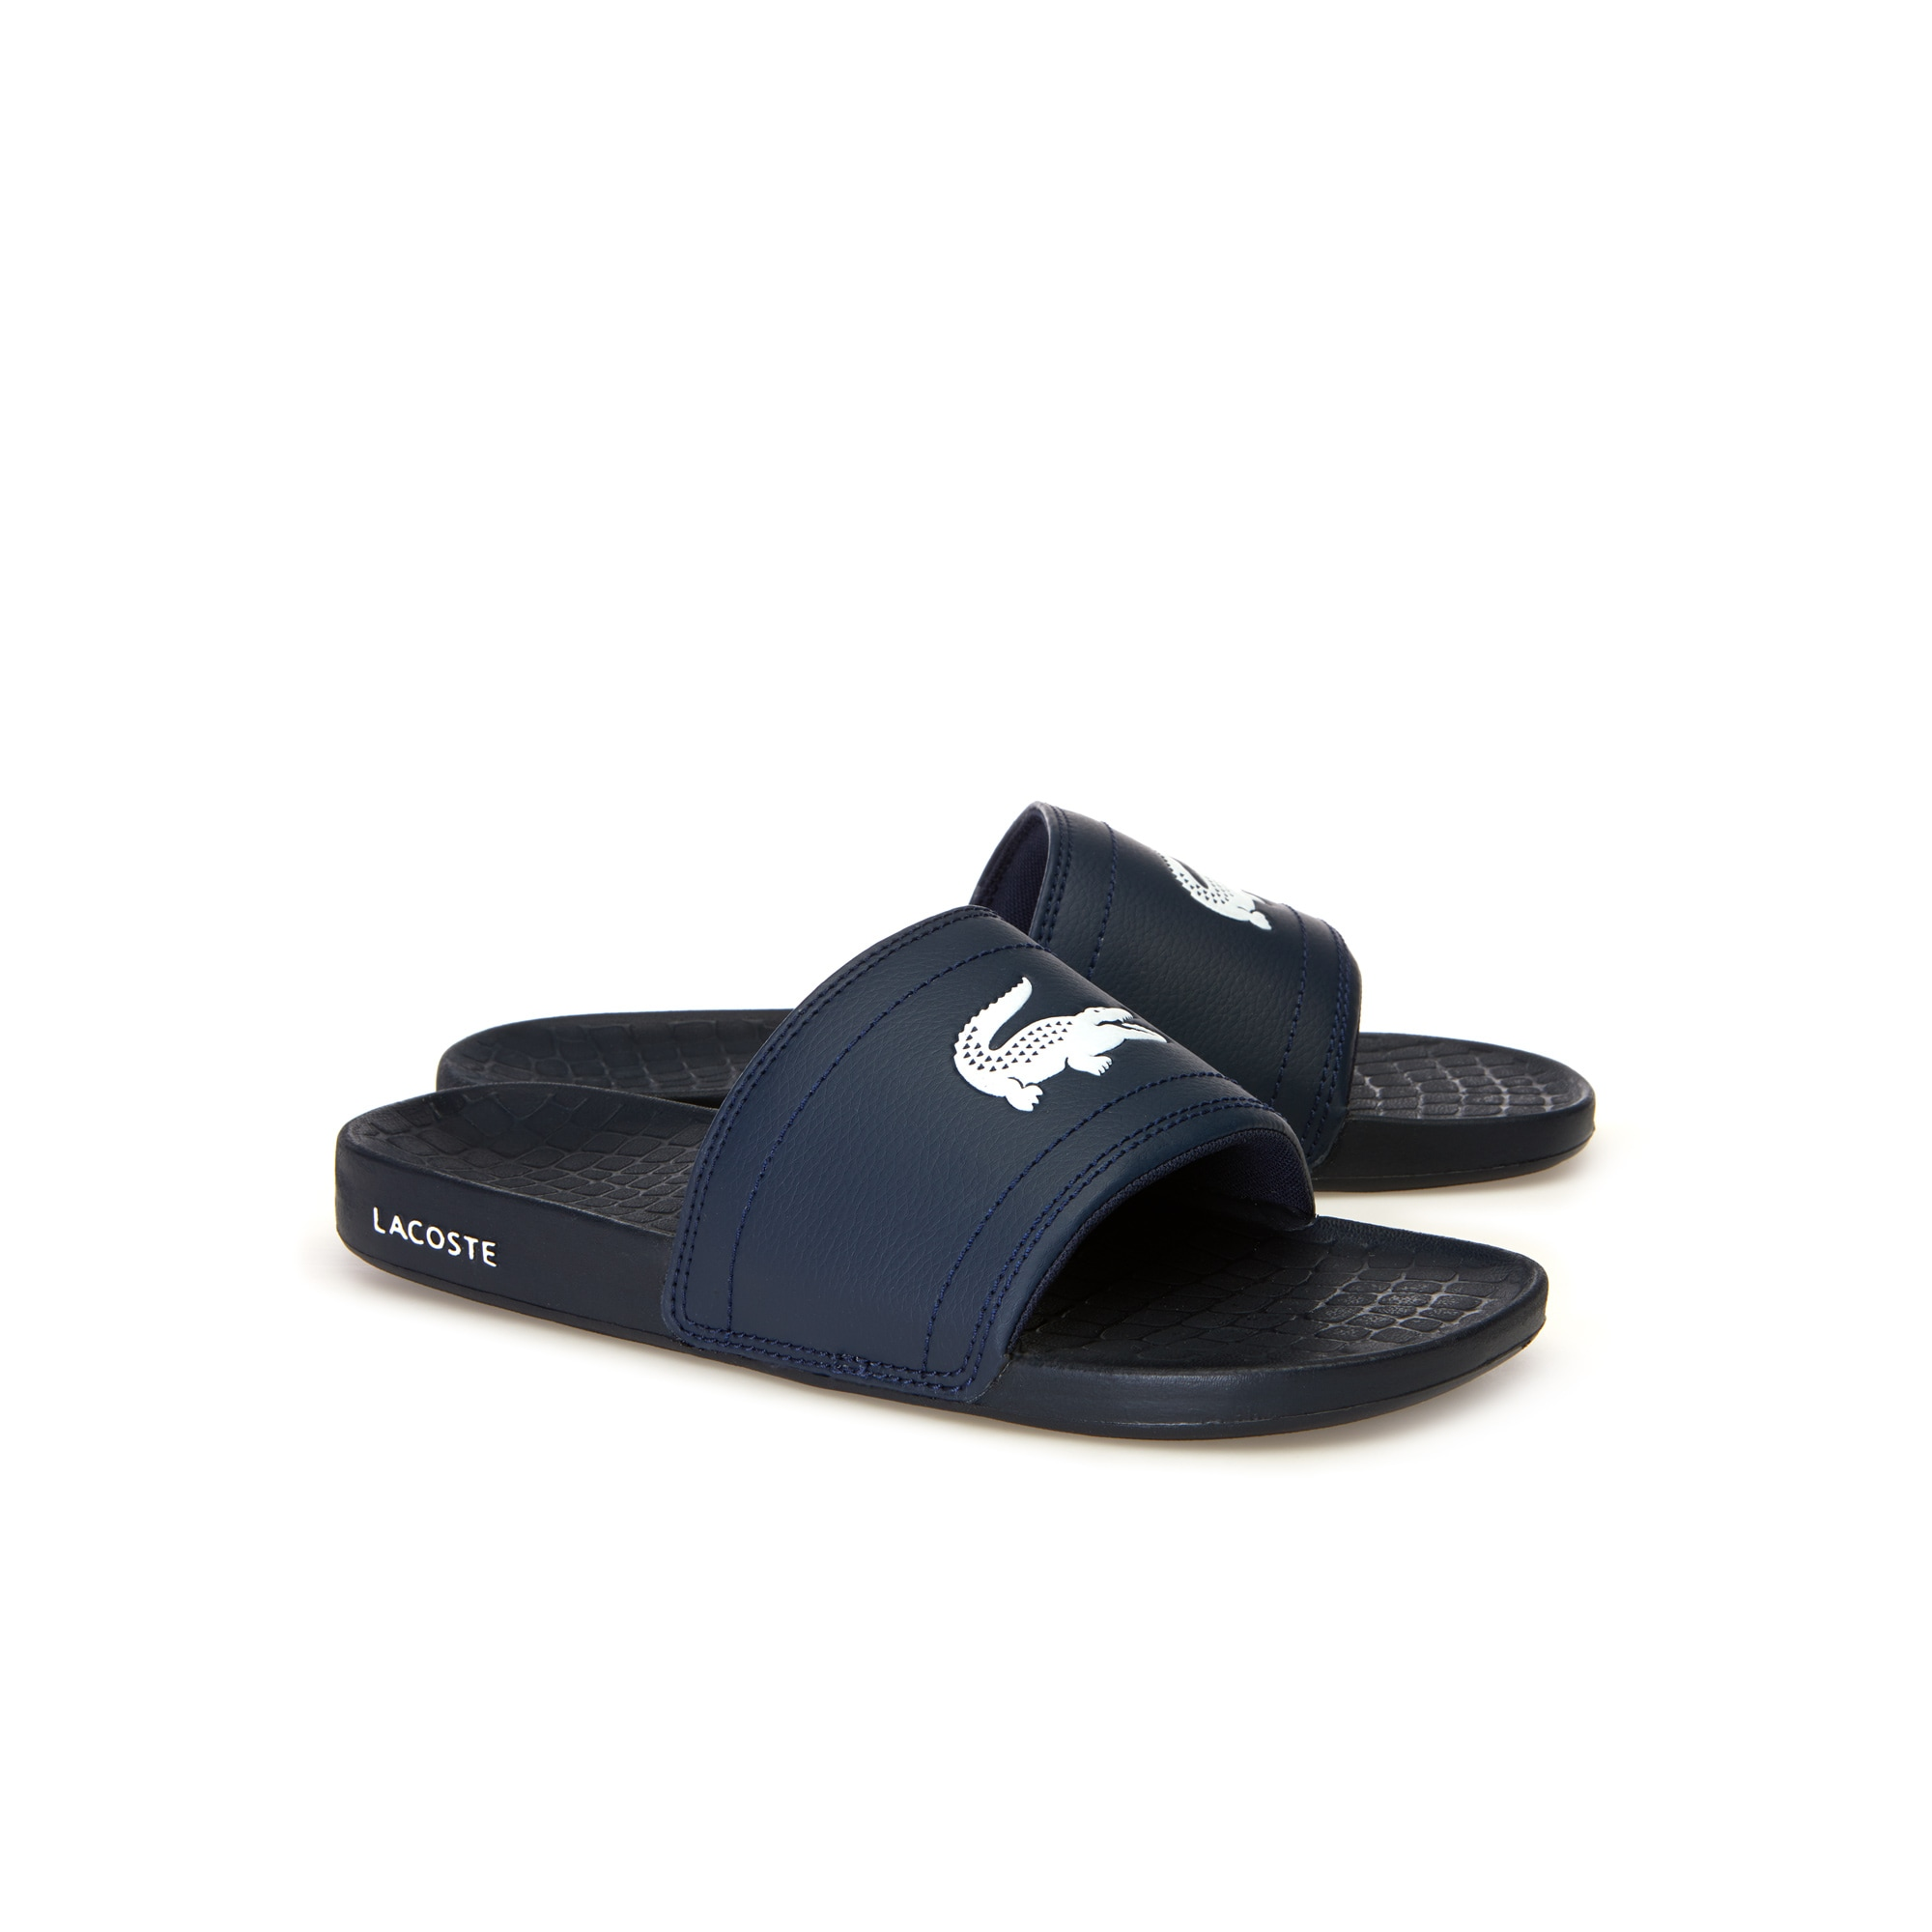 b41f8df5603 Men s Frasier Slides